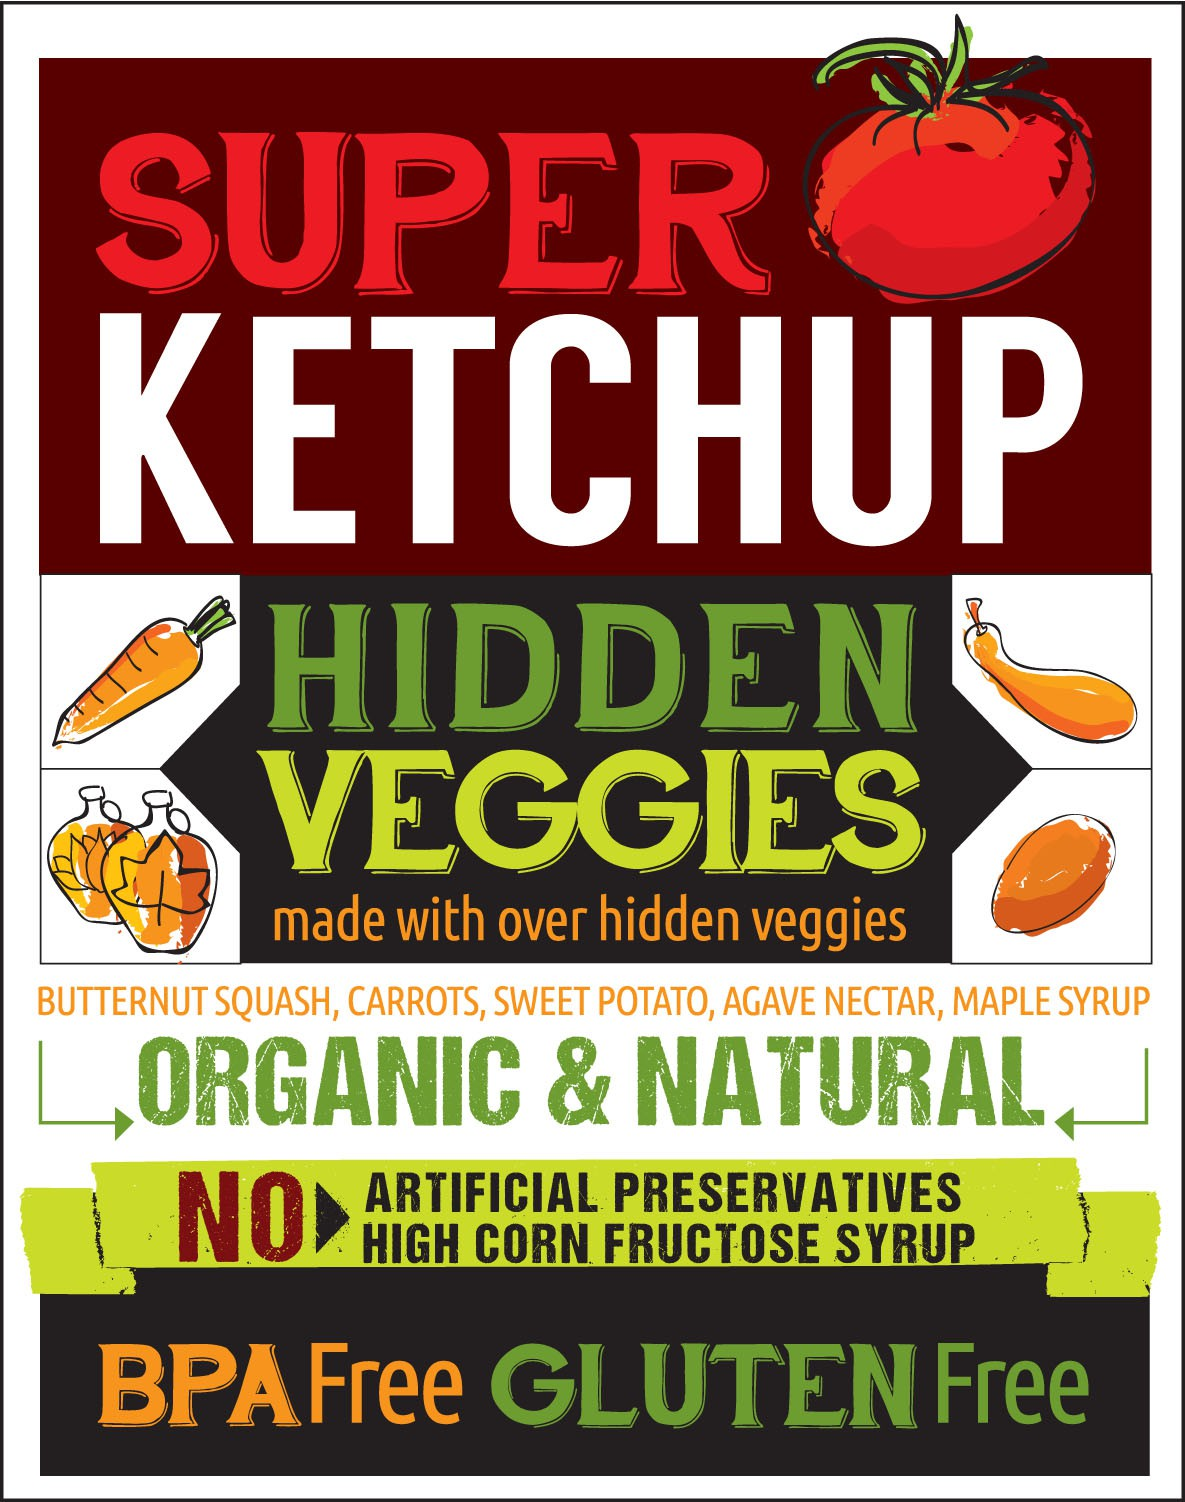 New label for Organic, Gluten-Free Ketchup with Hidden Veggies for Health Conscious Customers!